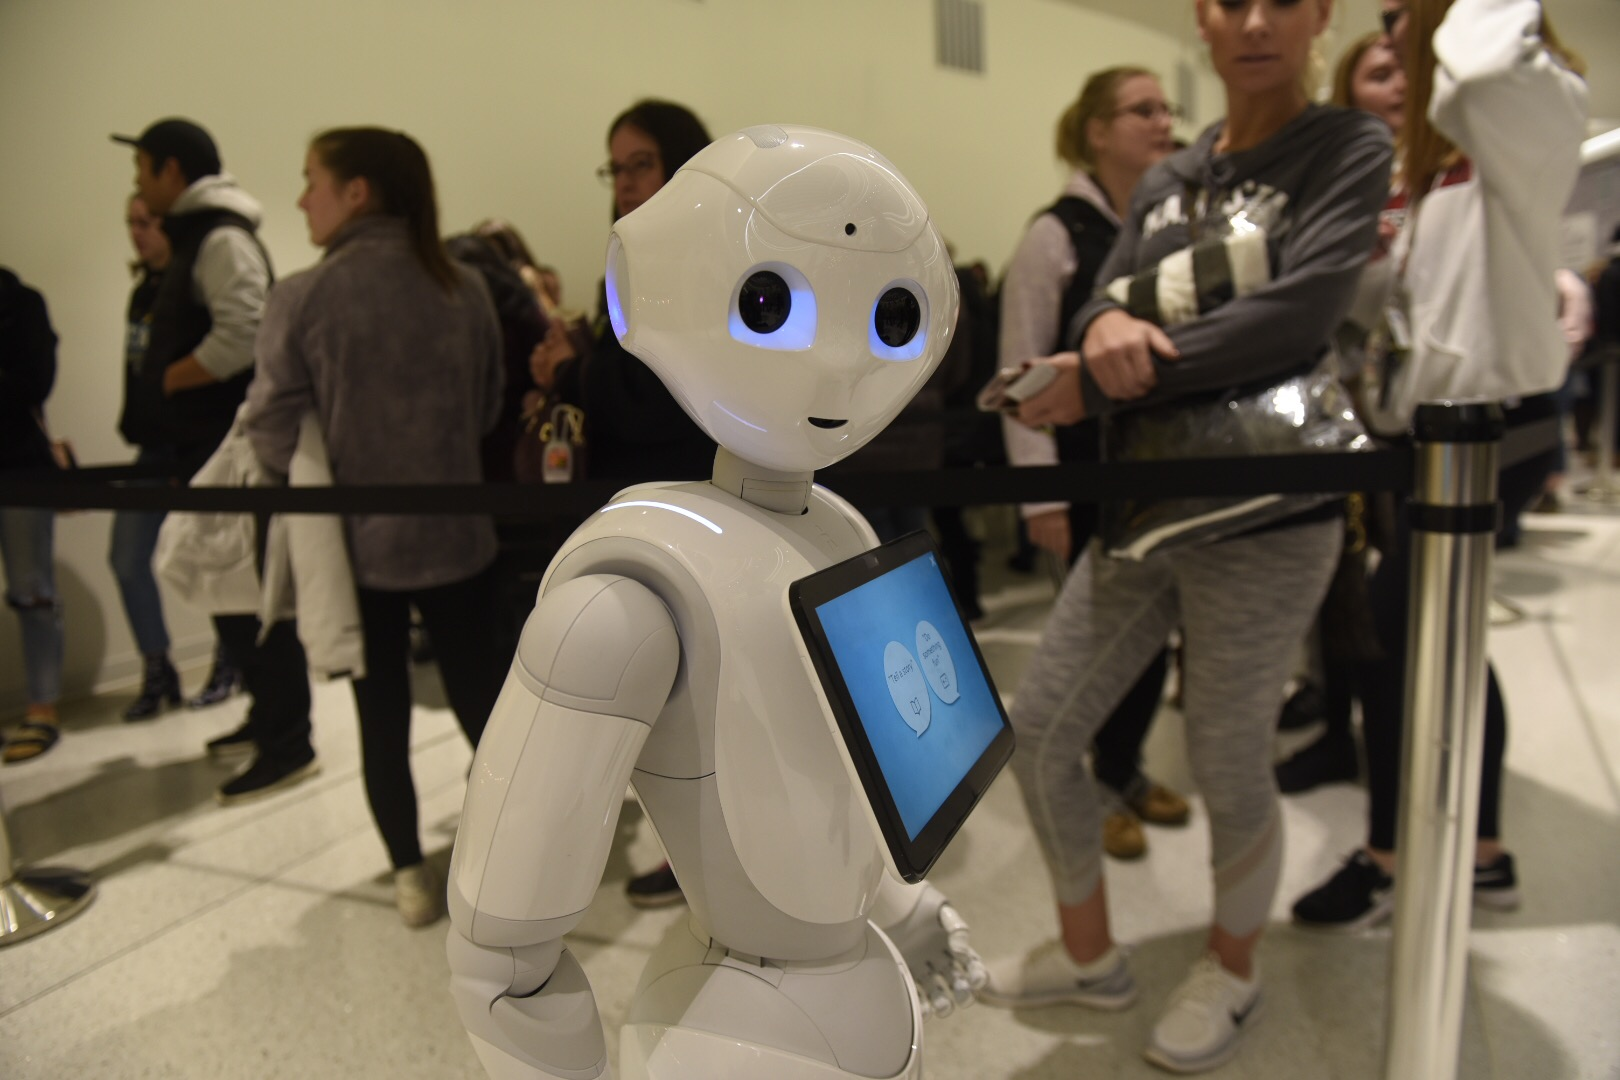 Mall of America Gets High-Tech With Chatbot and Humanoid Robots